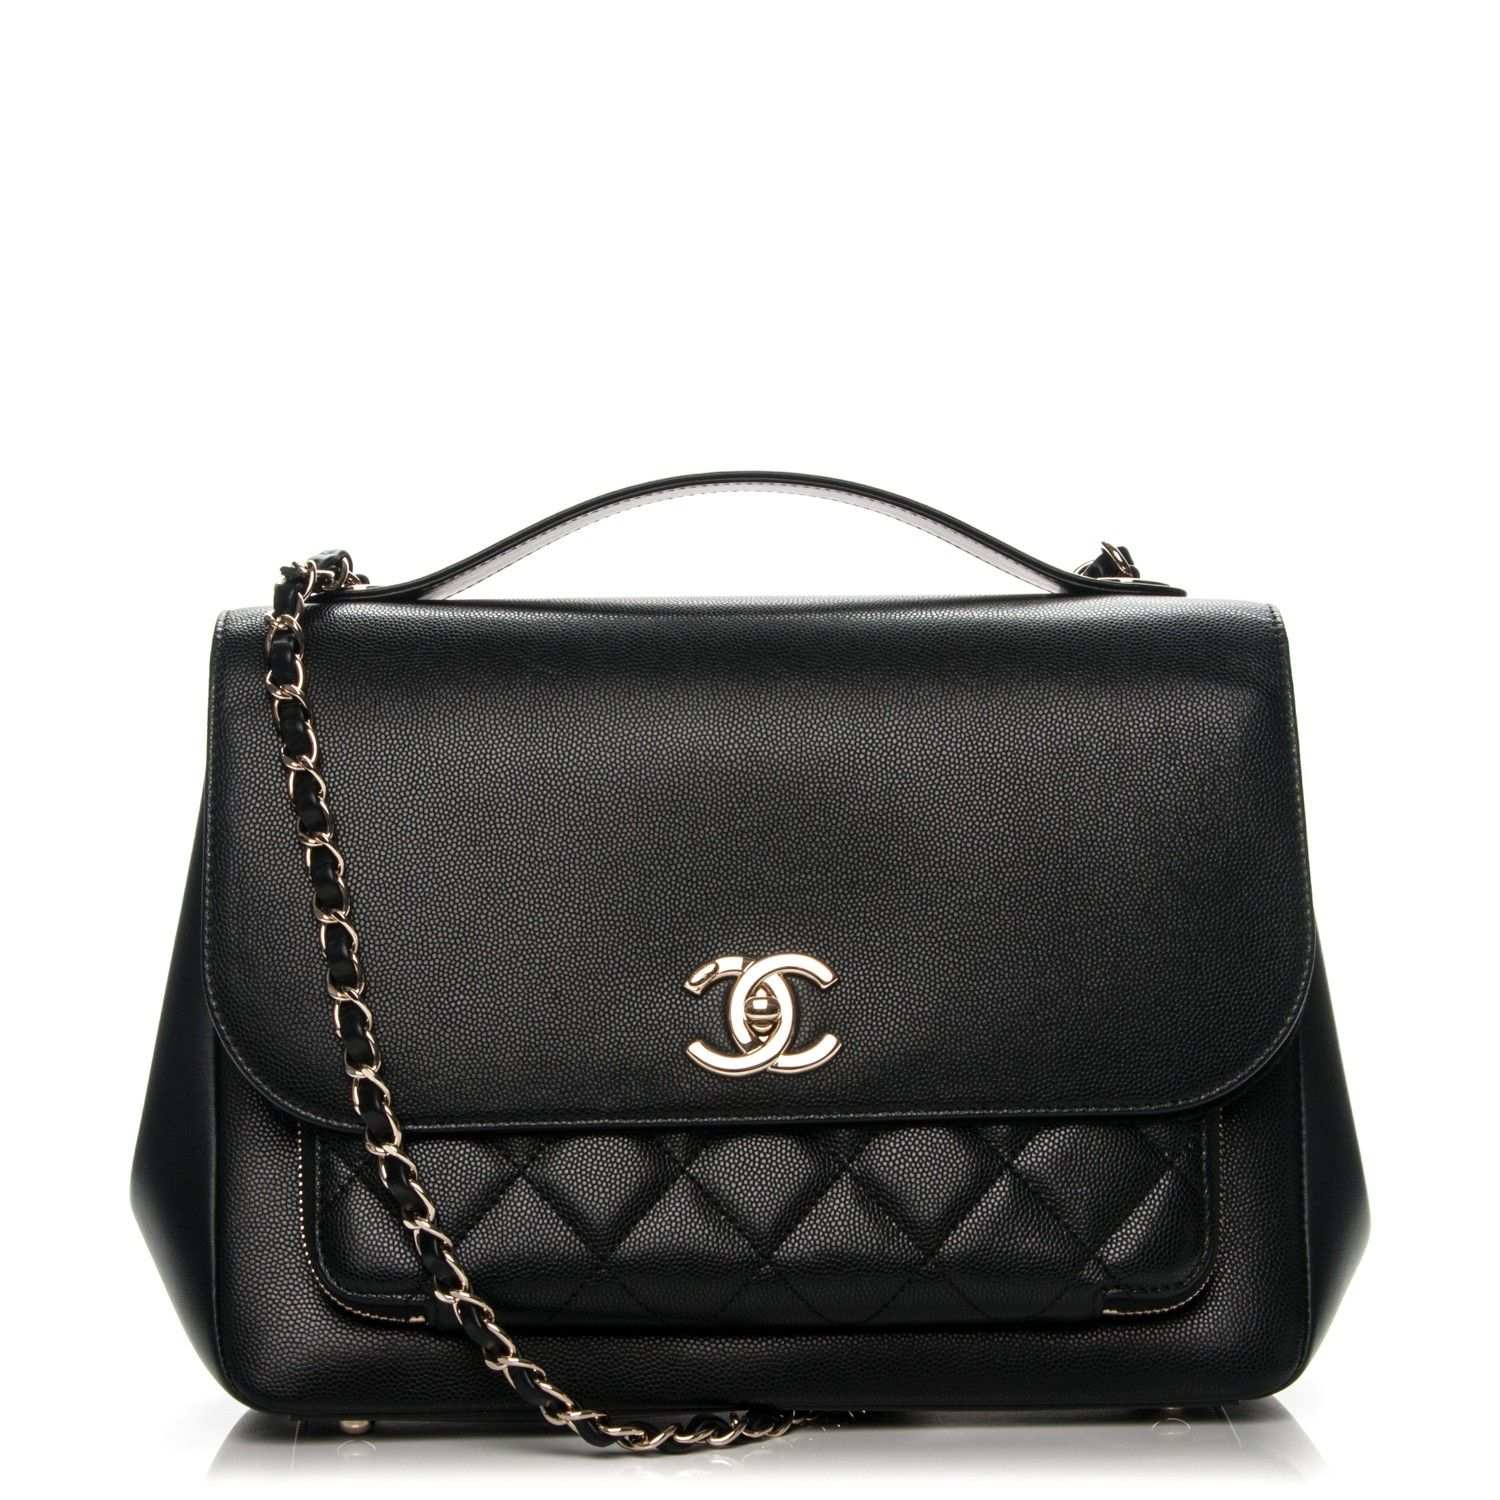 113ff2dd826040 This is an authentic CHANEL Caviar Quilted Large Business Affinity Flap in  Black. This sleek